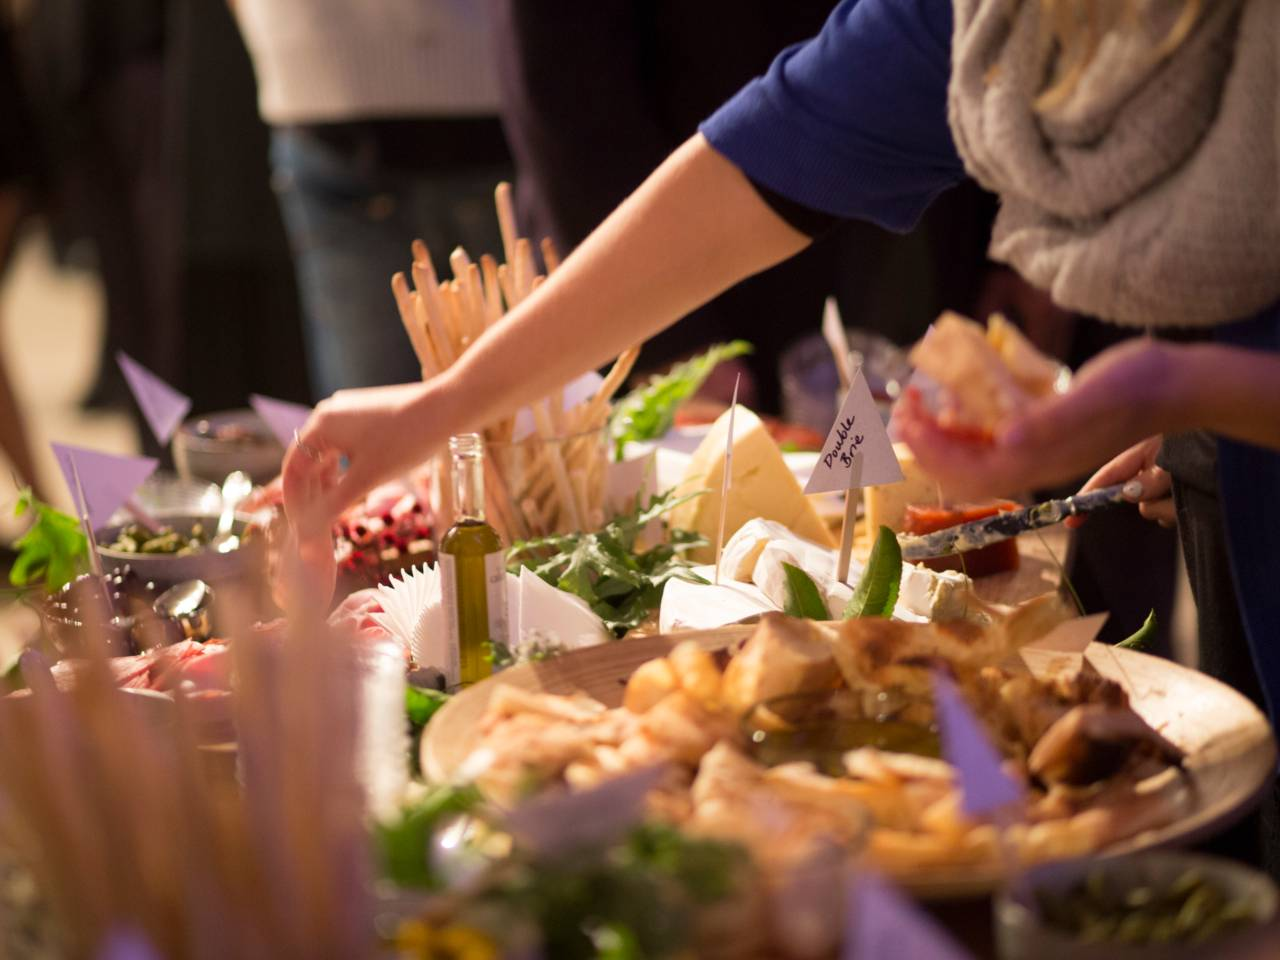 Table Of Cocktail Food At A An Event Function With One Of The Guests Reaching To Take Something.